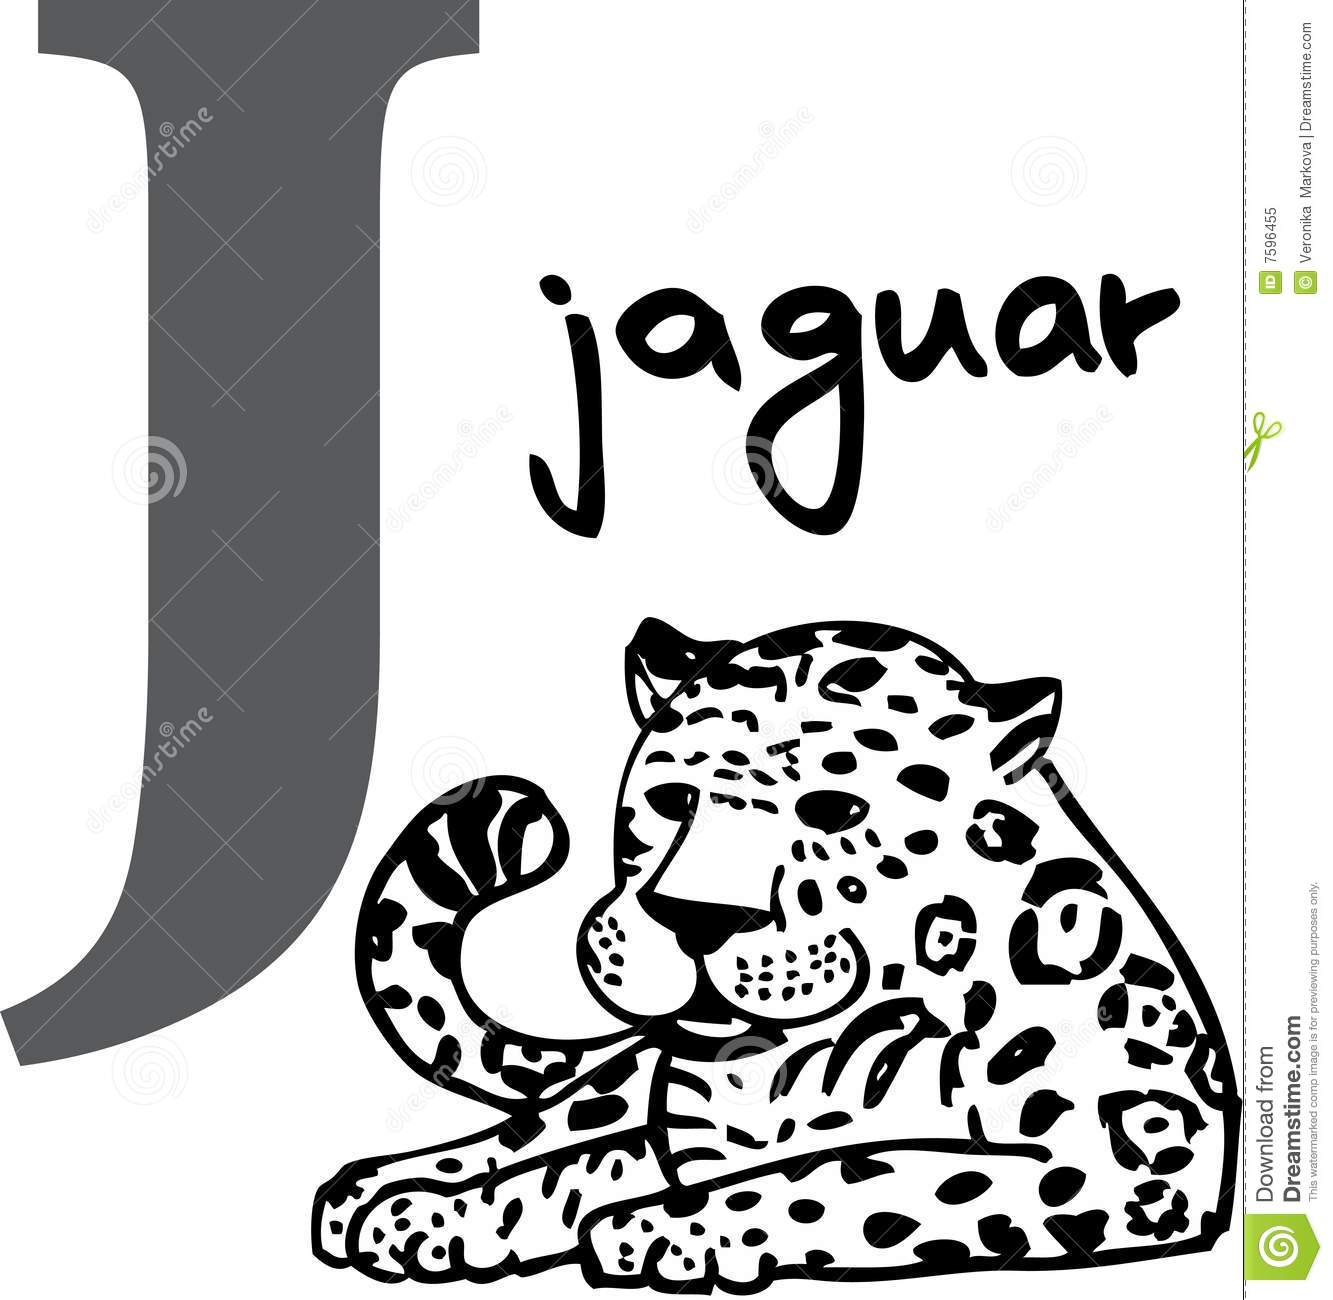 Animal Alphabet J Jaguar Royalty Free Stock Photo